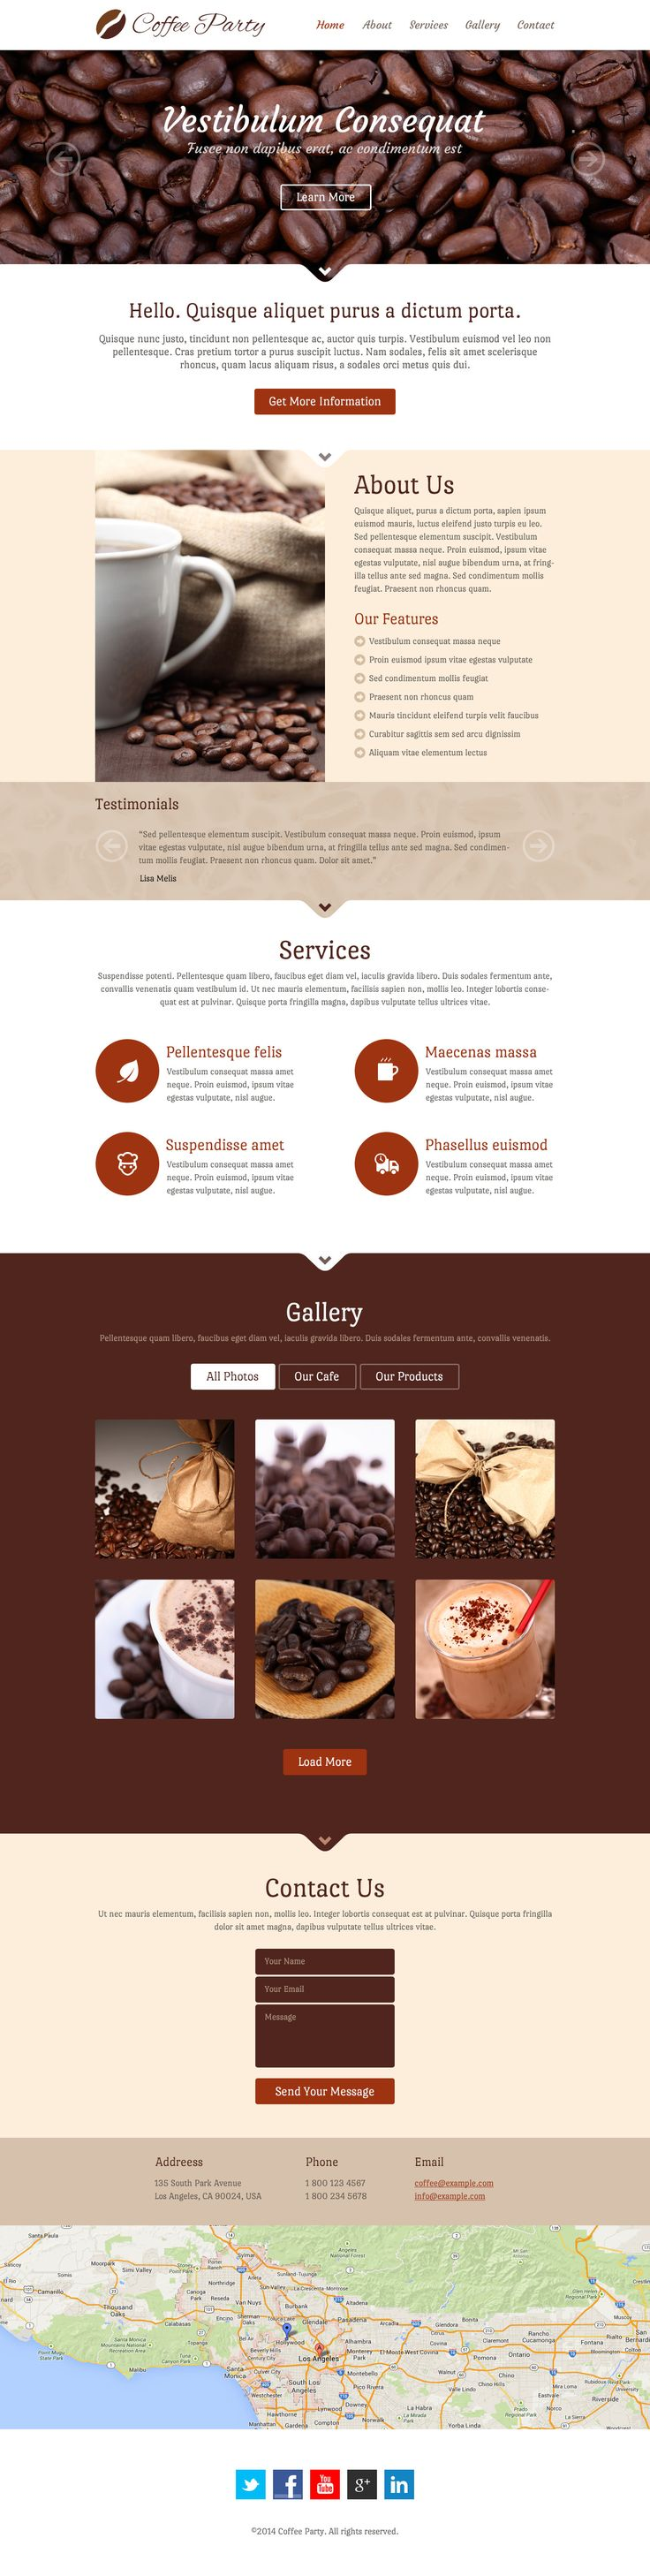 Get something great brewing with Coffee Party, a modern and responsive single­page template with a Java­bean theme. This features sections to list your services, a photo gallery to show off your cafe and products, and a contact section with a form, local information, and a full­width map. This template includes PSDs targeting tablets (768×1024) and phones (320×480).  http://www.templateblender.com/psd-templates/coffee-party-psd-template/